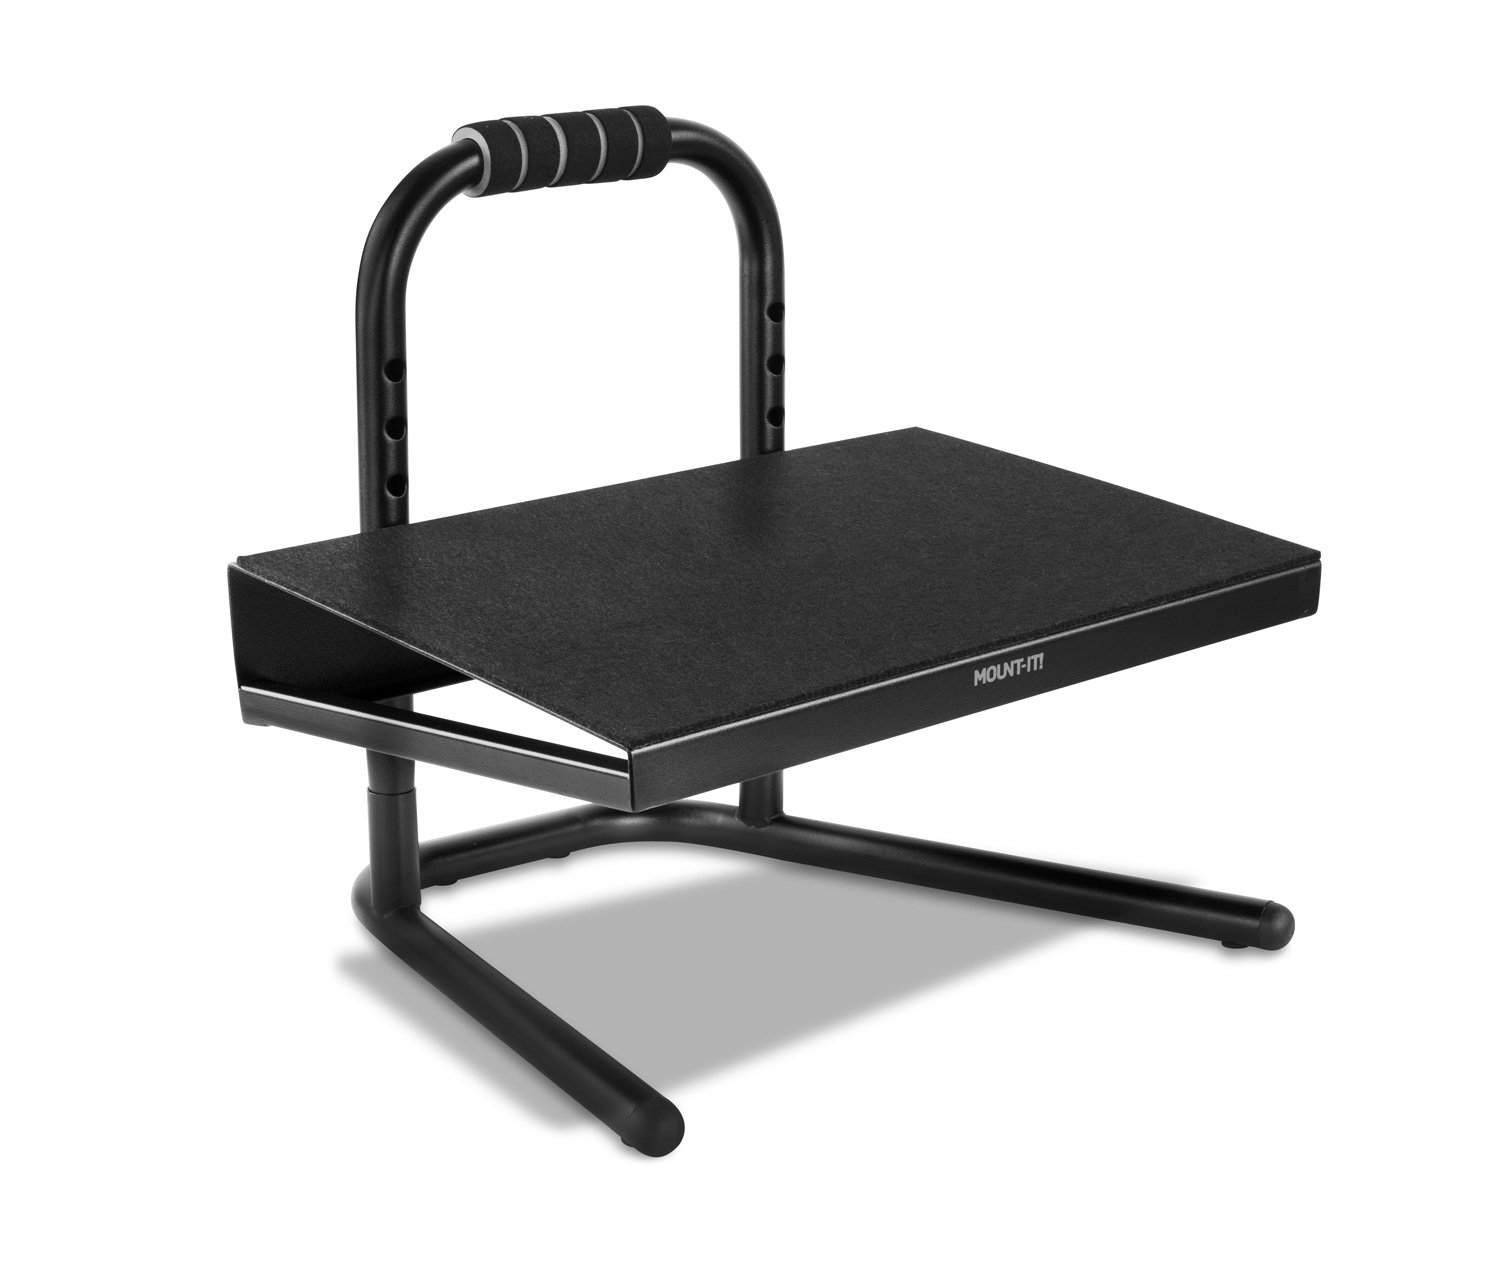 Mount-It! Height Adjustable Foot Rest for Under the Desk, Freestanding with Handle and Six Height Settings, Anti-Slip Padded Surface MI-7807